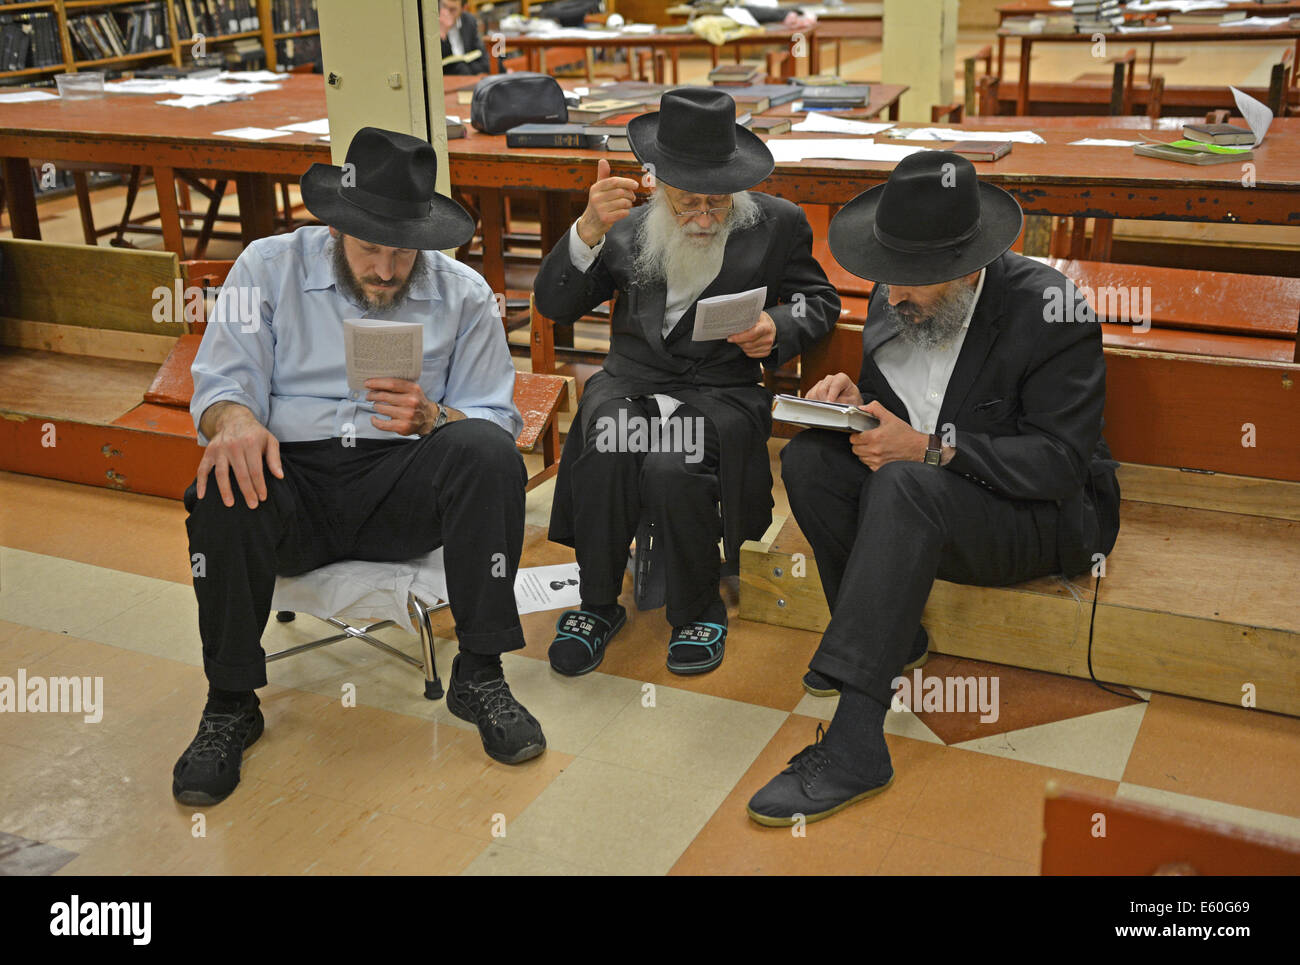 Religious Jewish men studying during Tisha B'Av morning services in a synagogue in Brooklyn, New York - Stock Image